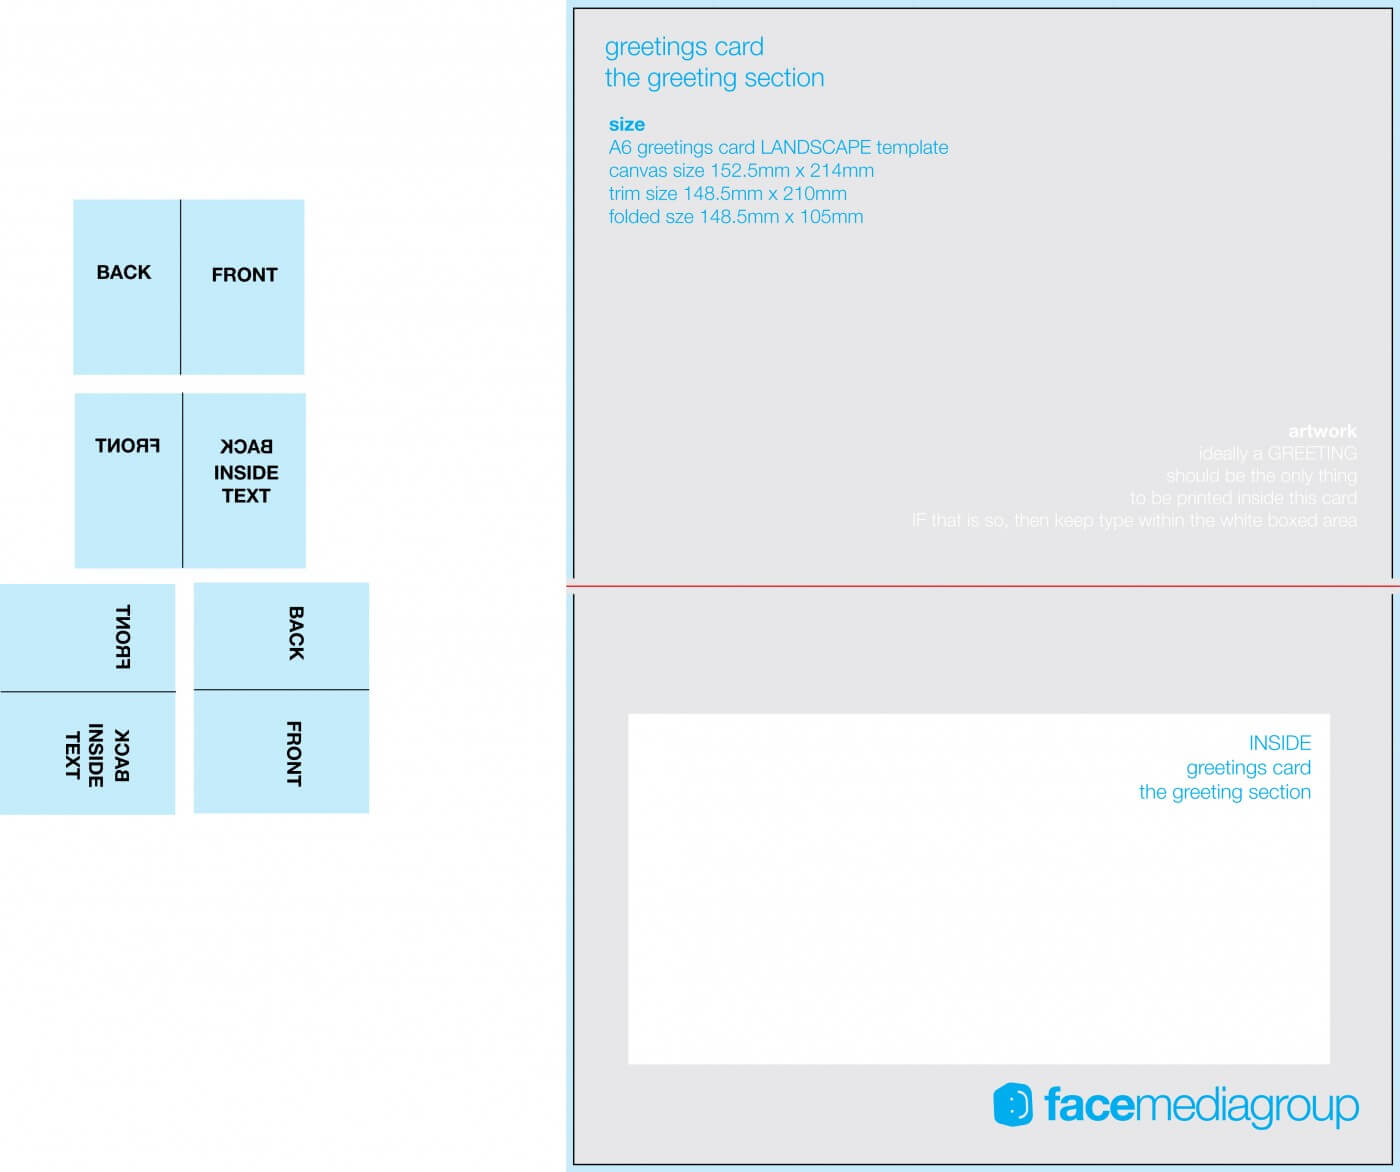 003 Free Blank Greeting Card Templates 314639 Template Ideas Intended For Free Blank Greeting Card Templates For Word